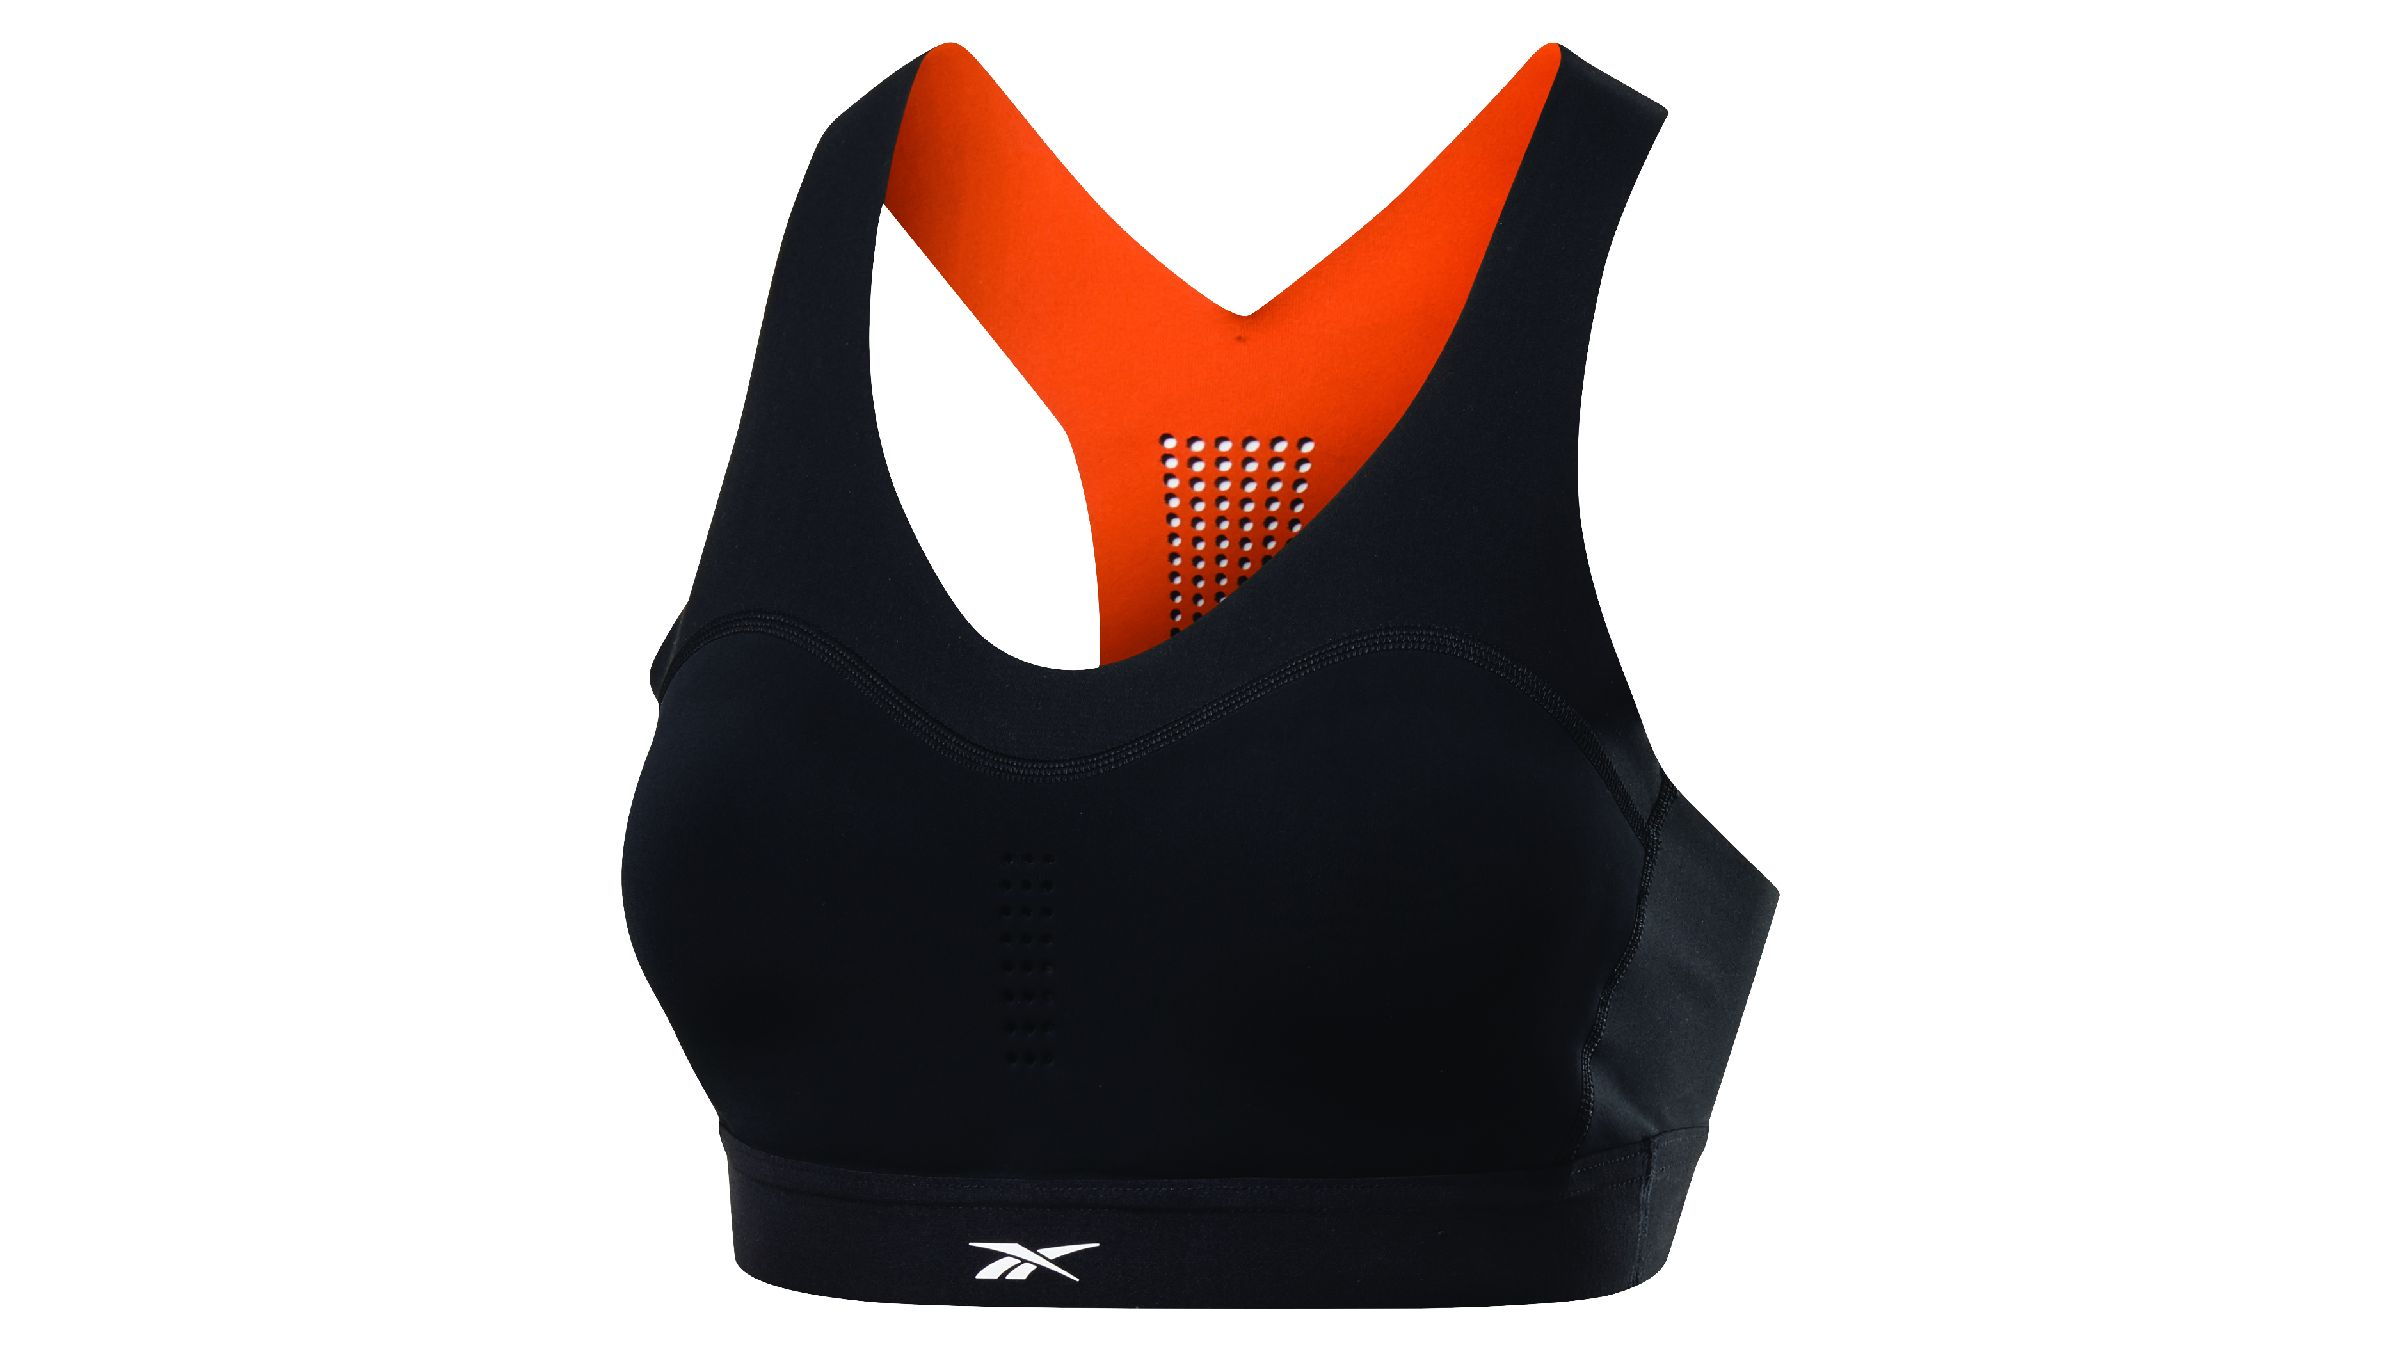 Black Reebok Pure Move Bra with bright orange lining